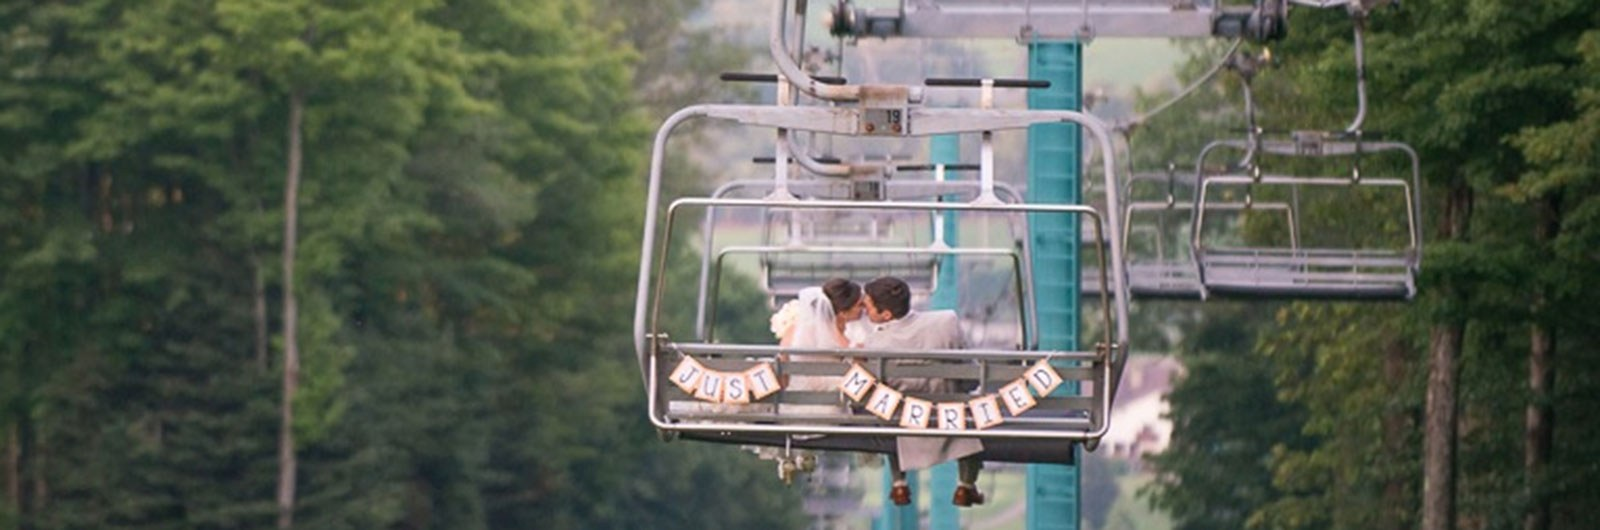 Just Married ride down the Chairlift